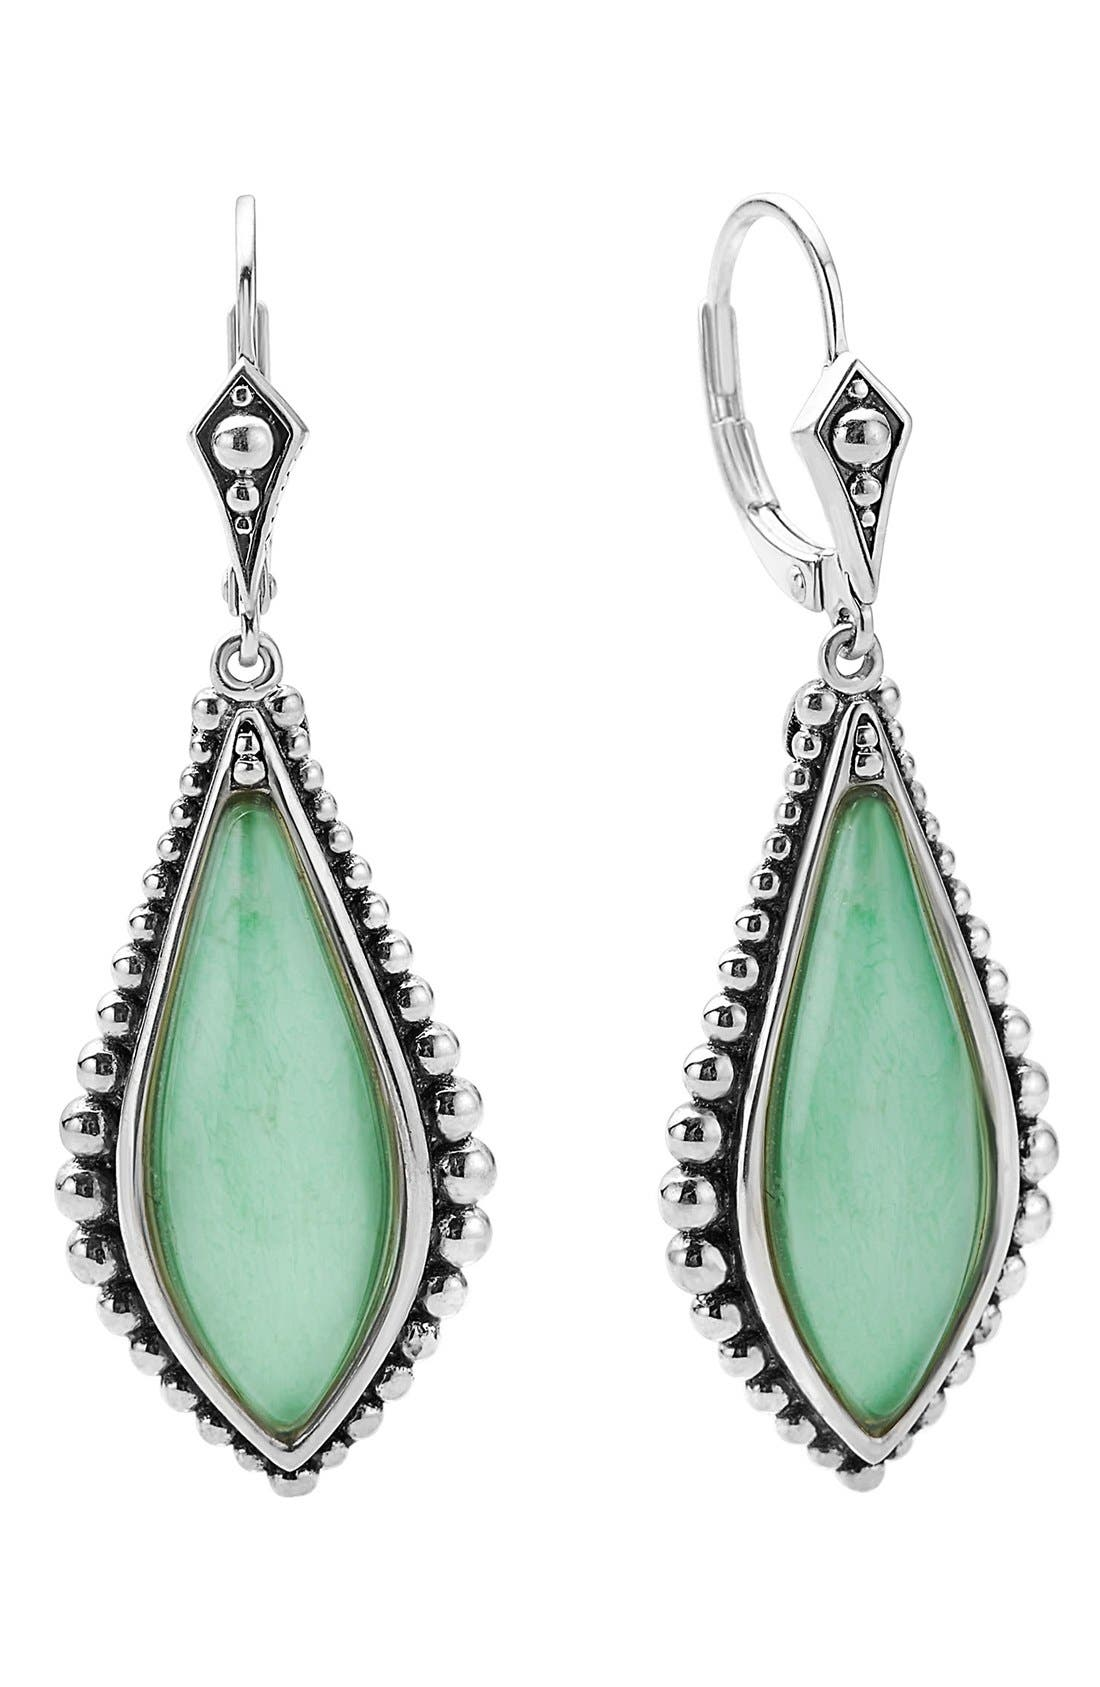 'Contessa' Semiprecious Stone Drop Earrings,                             Main thumbnail 1, color,                             Variscite